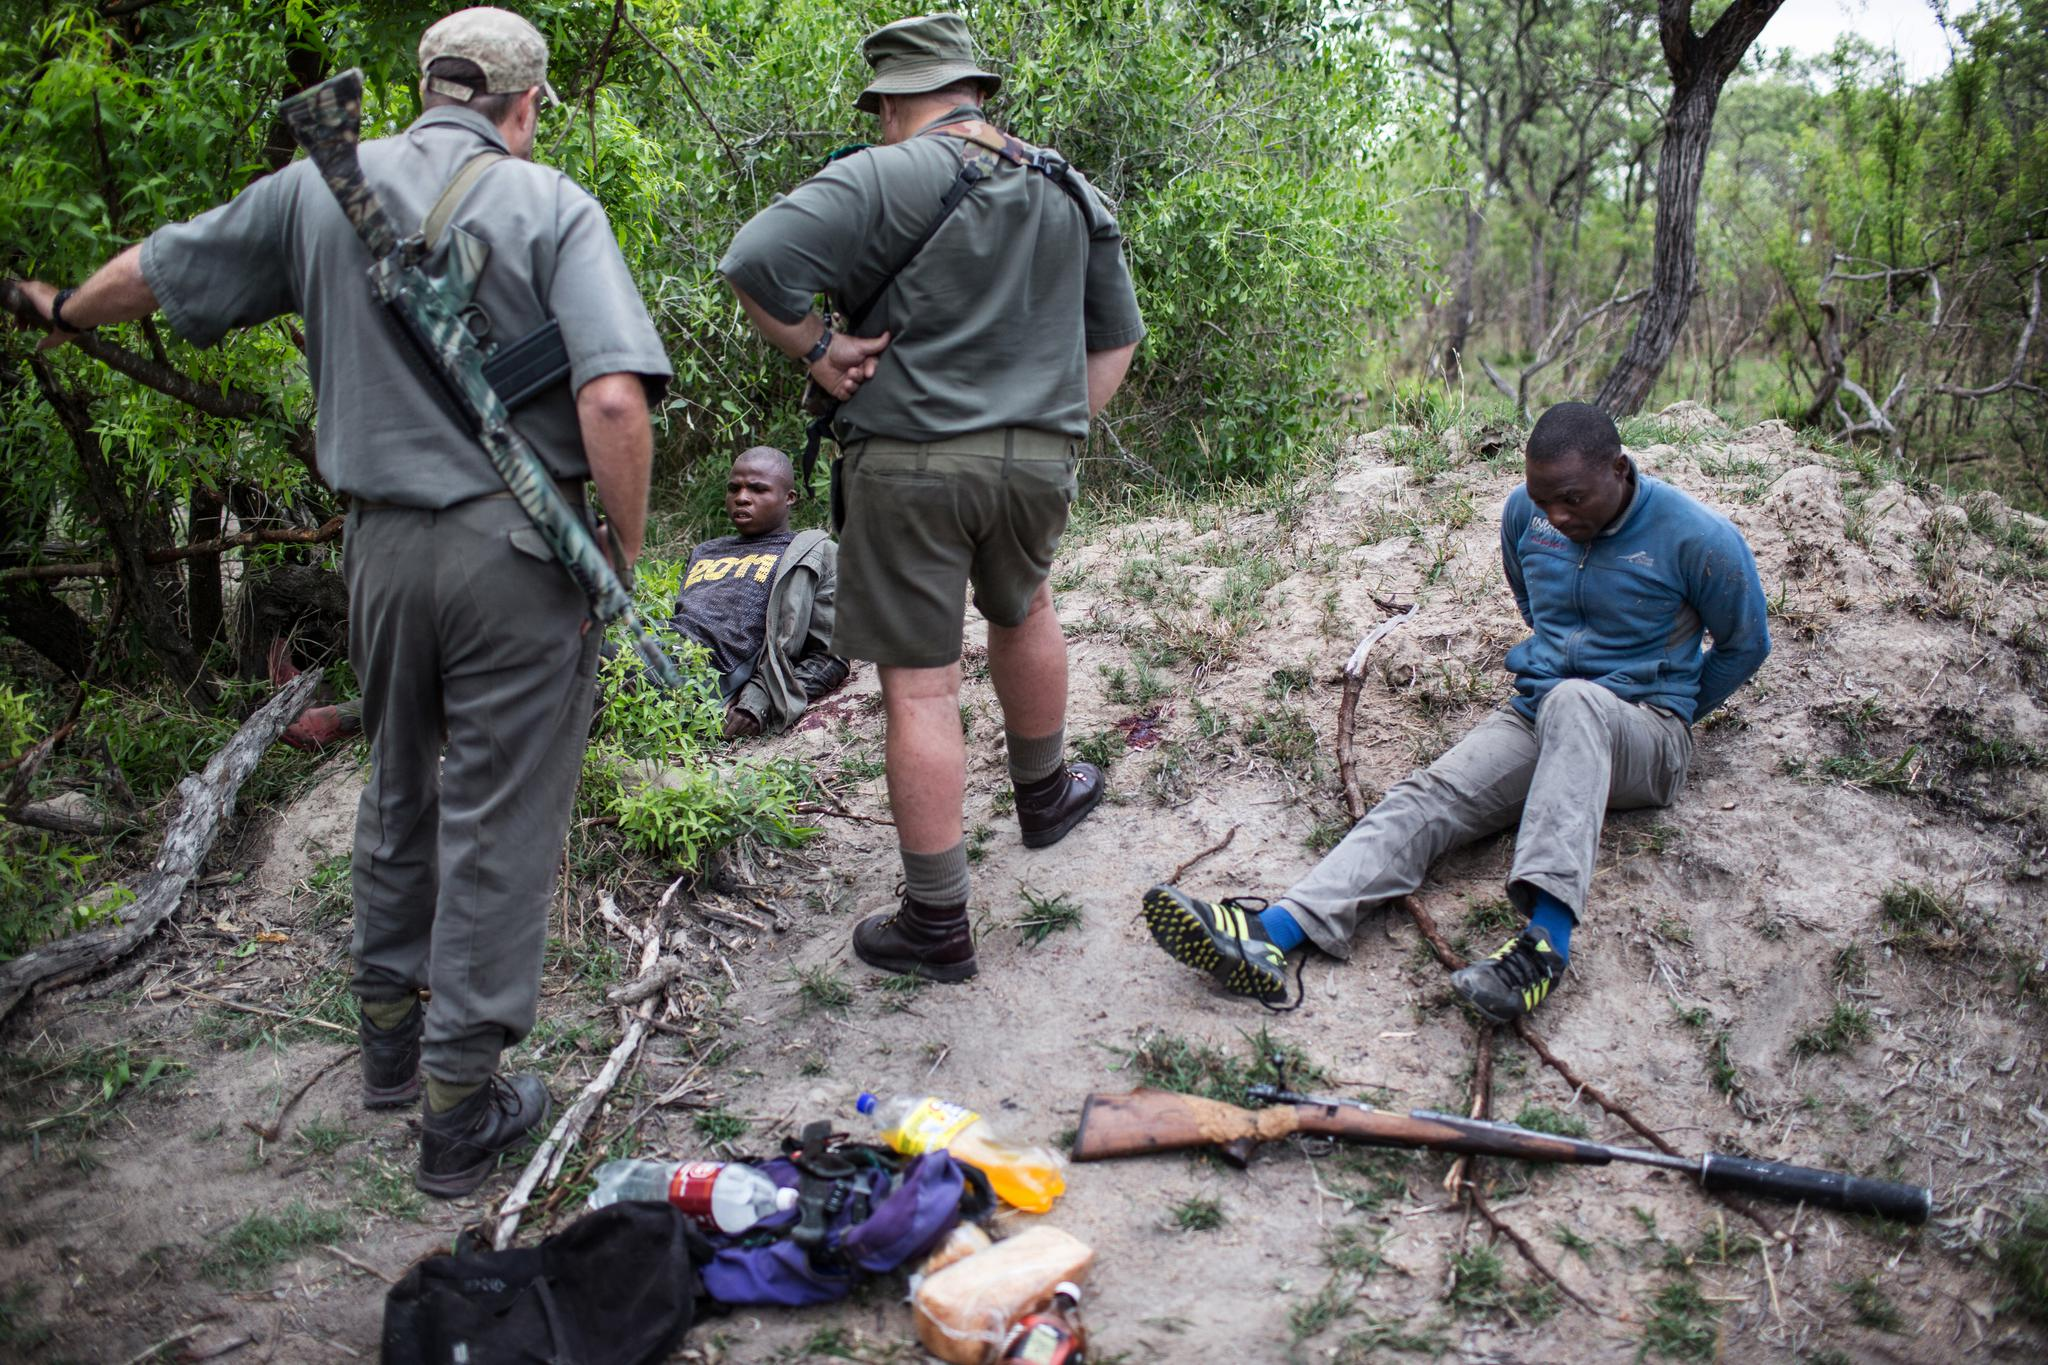 Rangers Rob Thompson and Don English with suspected rhino poachers at Kruger National Park in South Africa, on November 7, 2014.